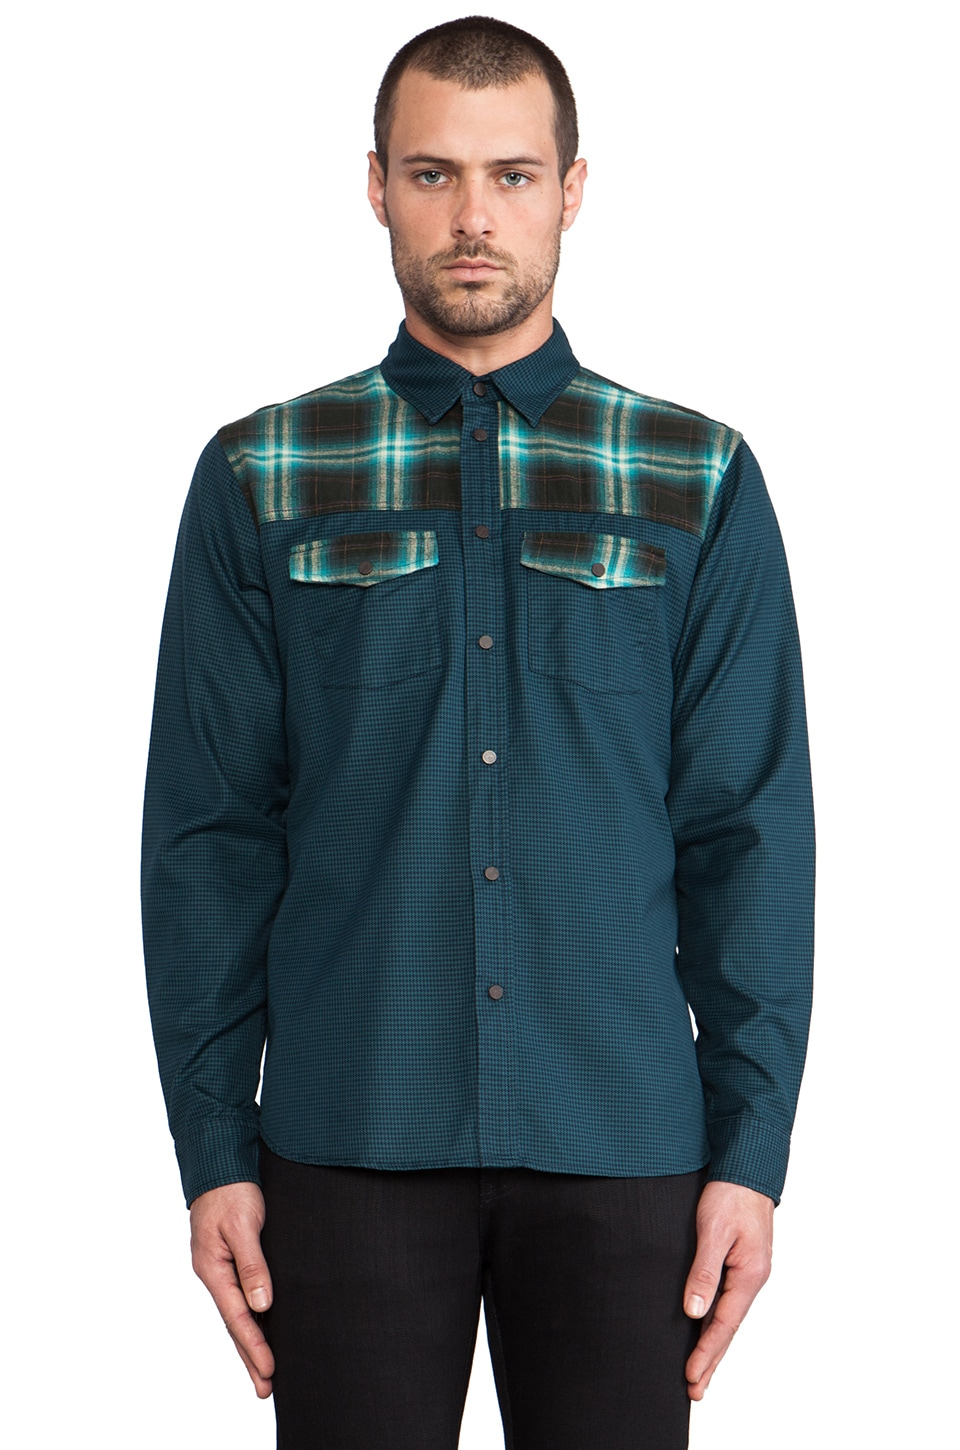 Marc by Marc Jacobs Yosemite Houndstooth Button Down in Teal Multi